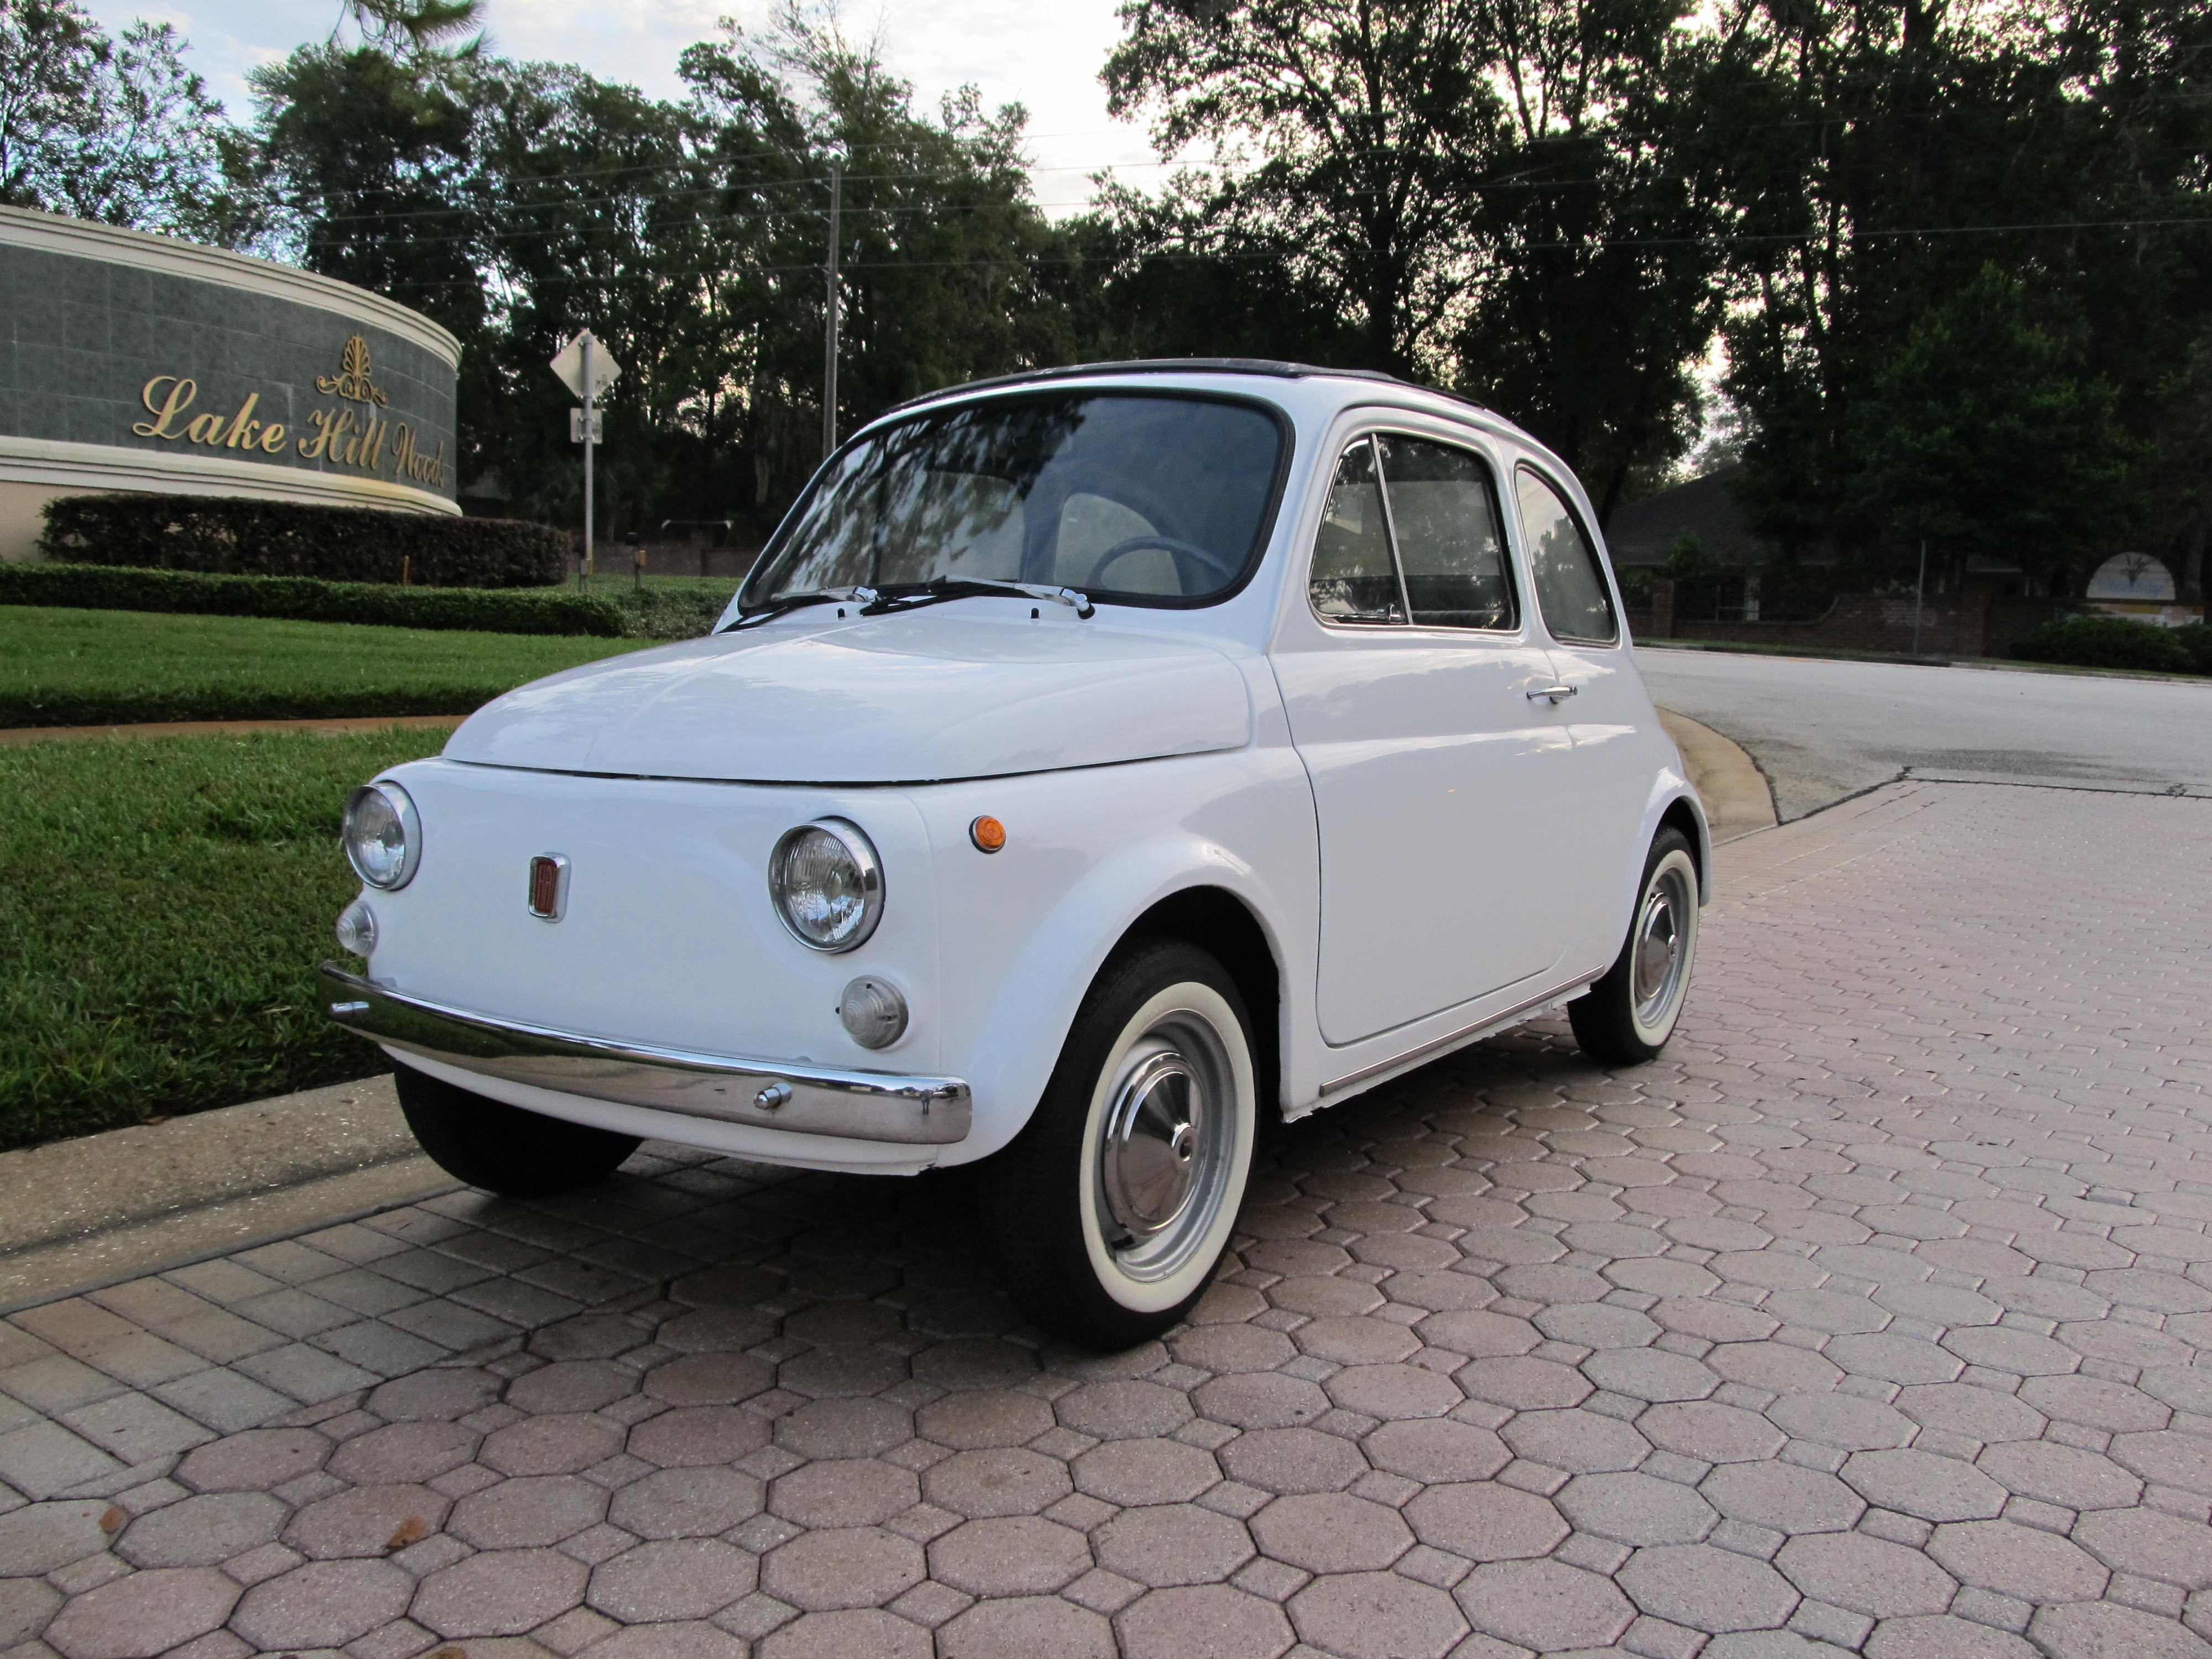 1970 fiat 500 l sold vantage sports cars vantage sports cars. Black Bedroom Furniture Sets. Home Design Ideas